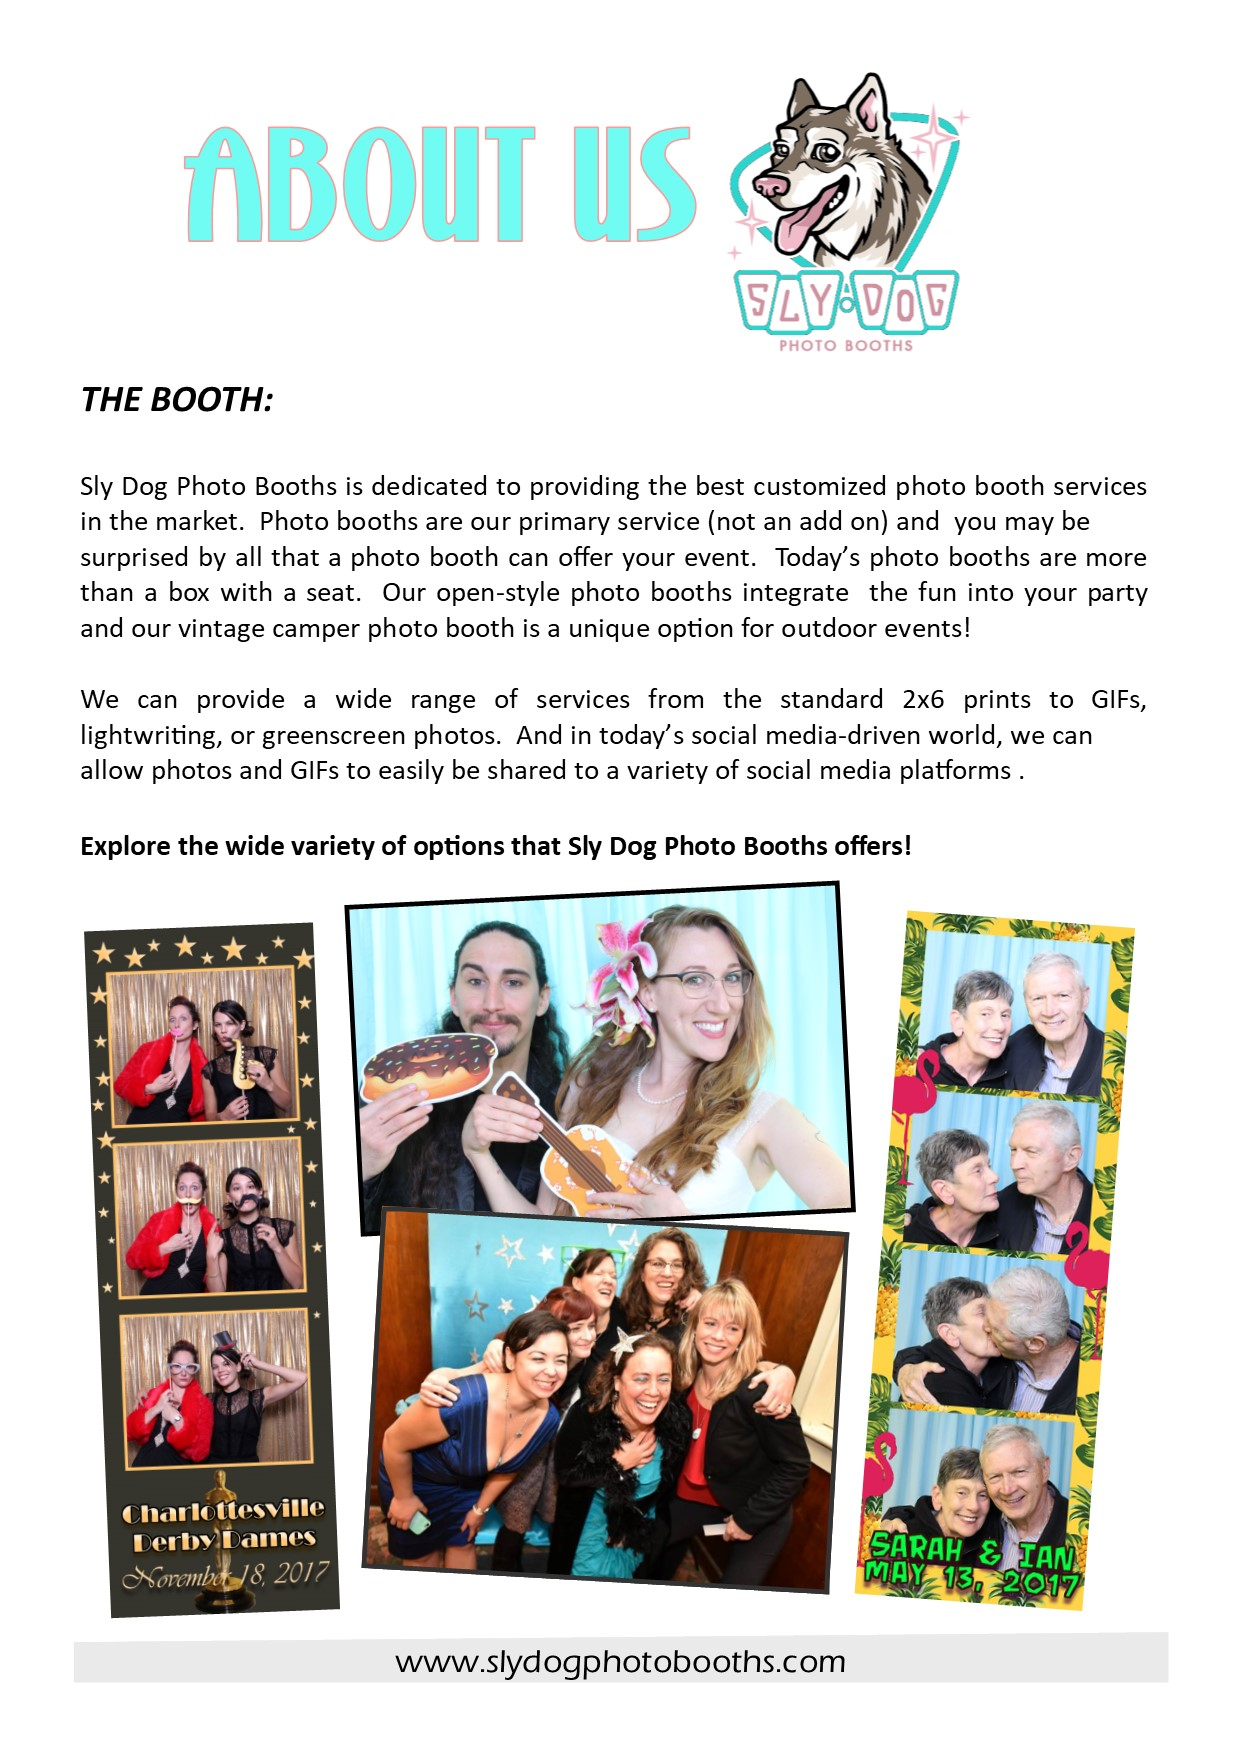 photo booth proposal_MD1.jpg